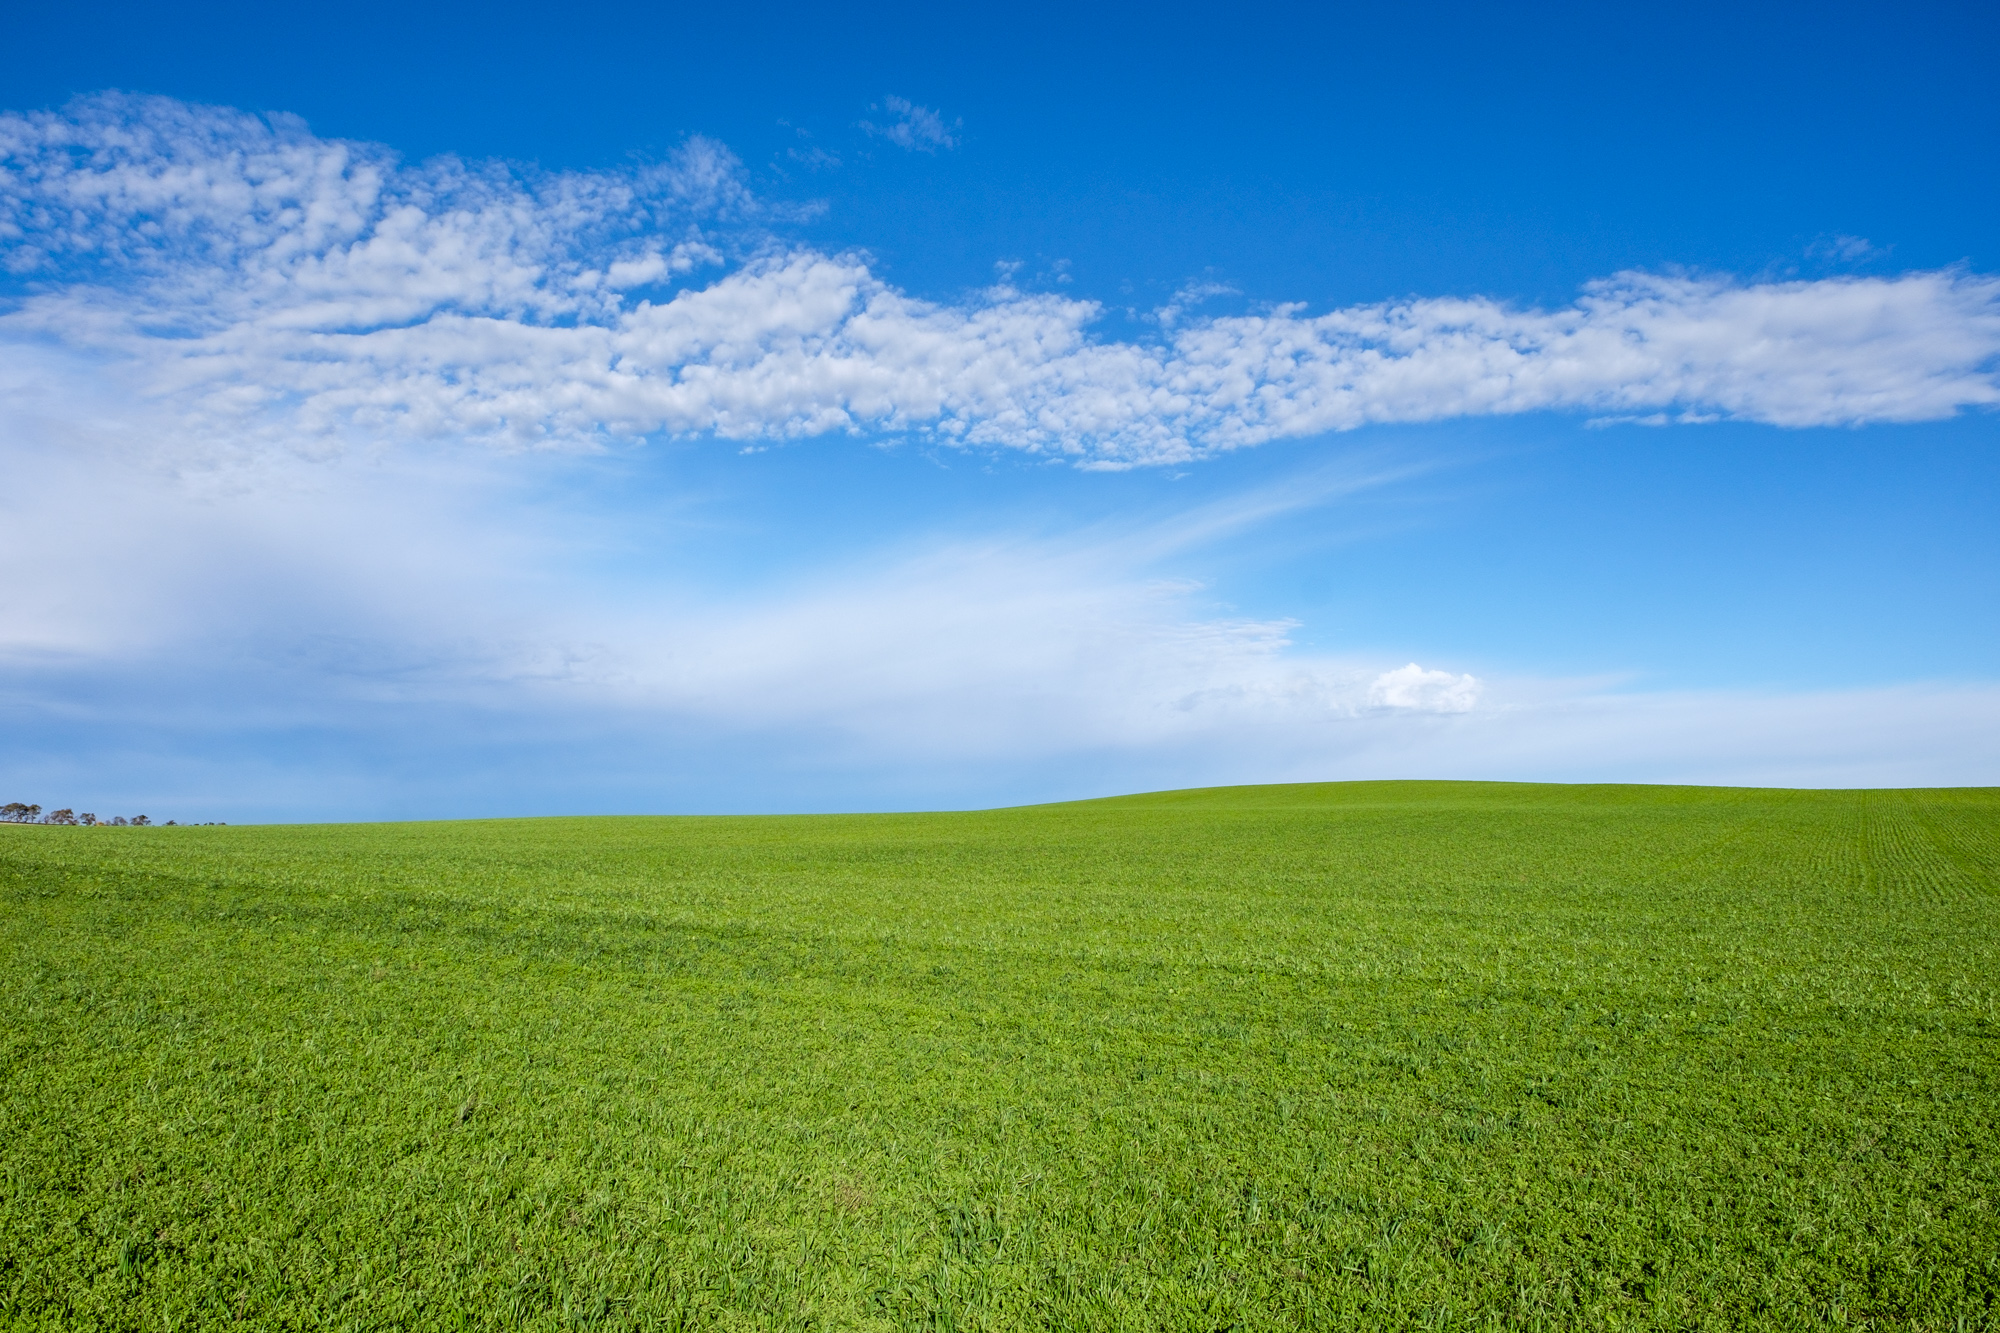 On the way to Elkhorn Ranch, we found the most beautiful green field.